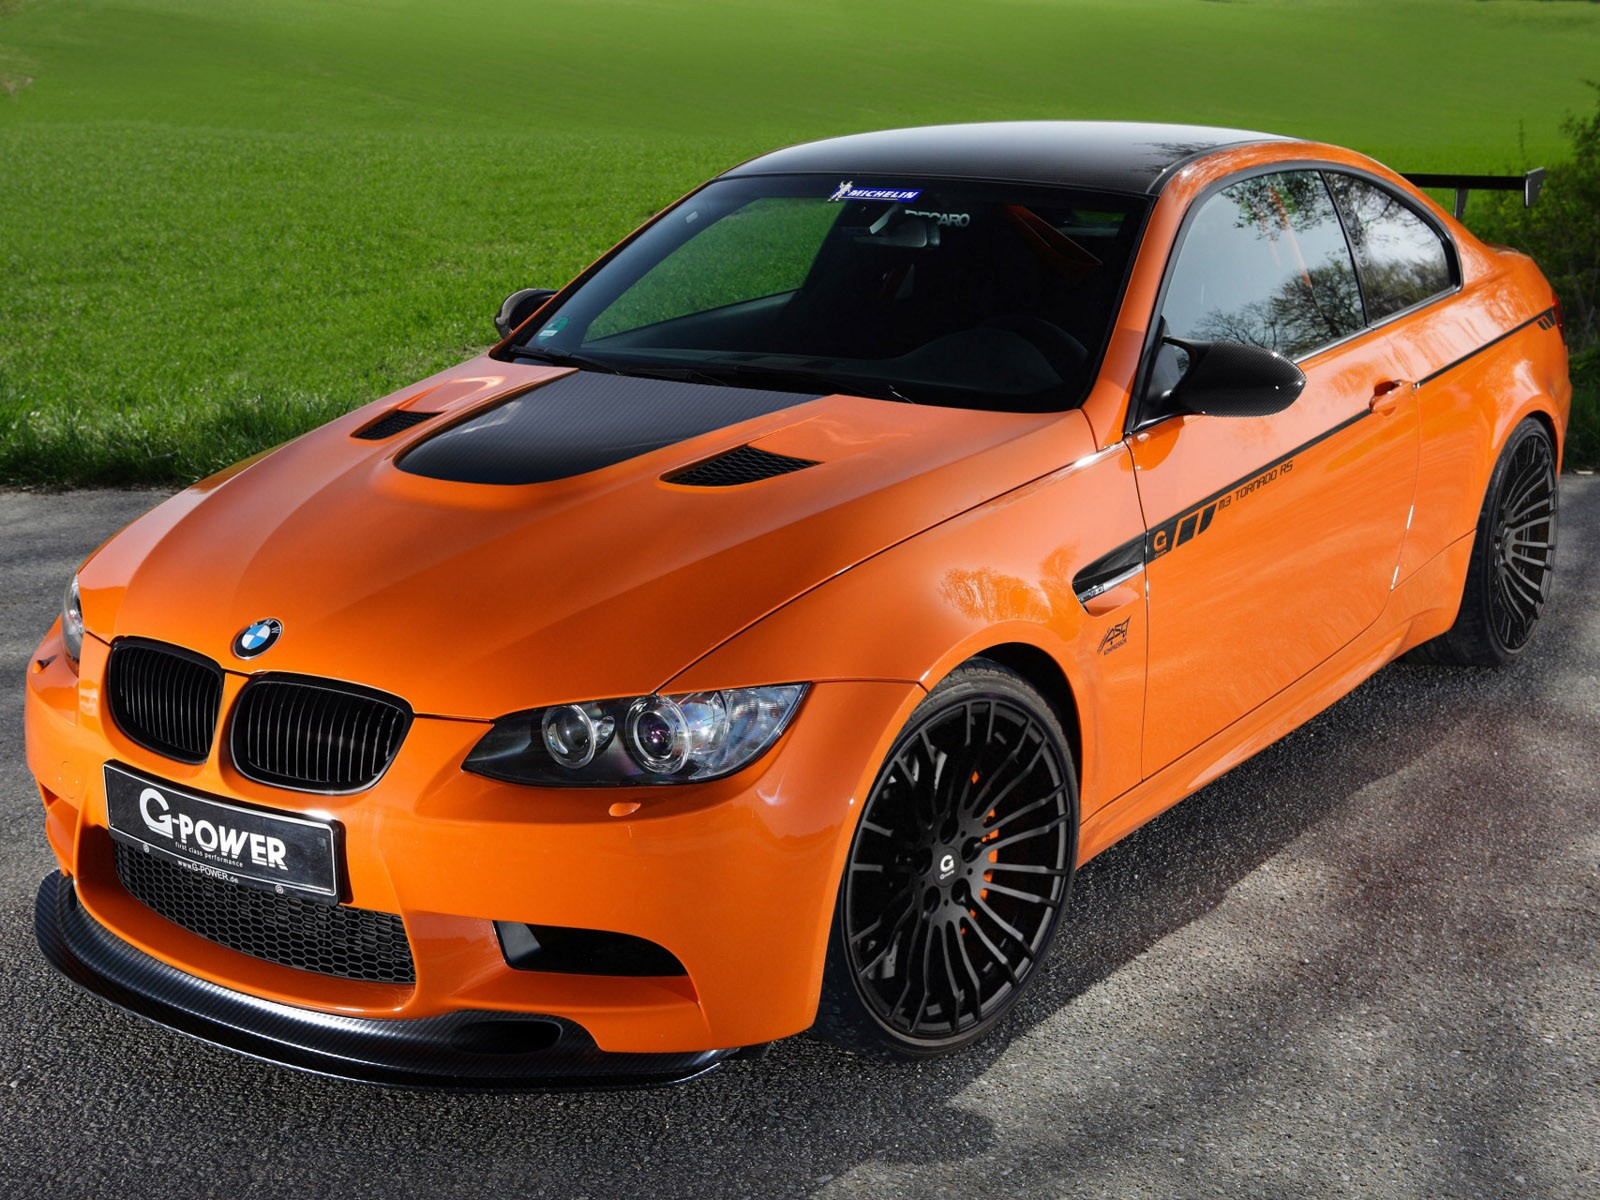 2011 G-power - Bmw M3 Tornado RS E92